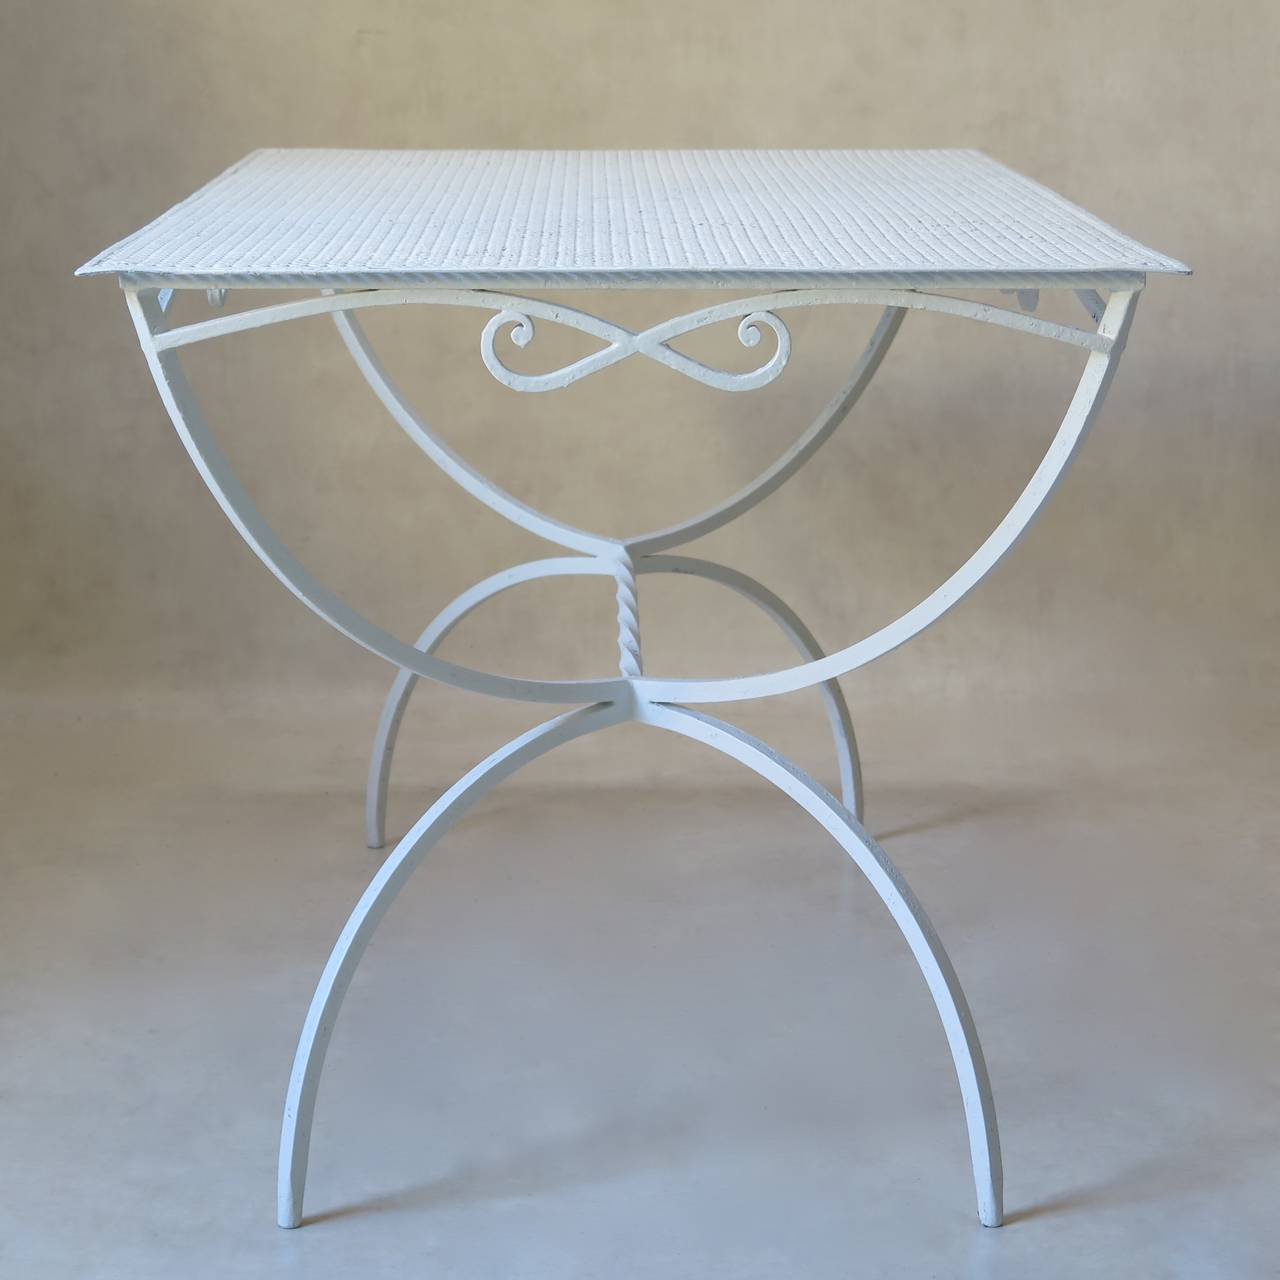 Rectangular wrought iron garden dining table by Maison Jansen. The tabletop is made of cloverleaf patterned sheet metal. The apron is decorated with a bow on all four sides. Curule style base, joined by a twisted iron stretcher.  Also available